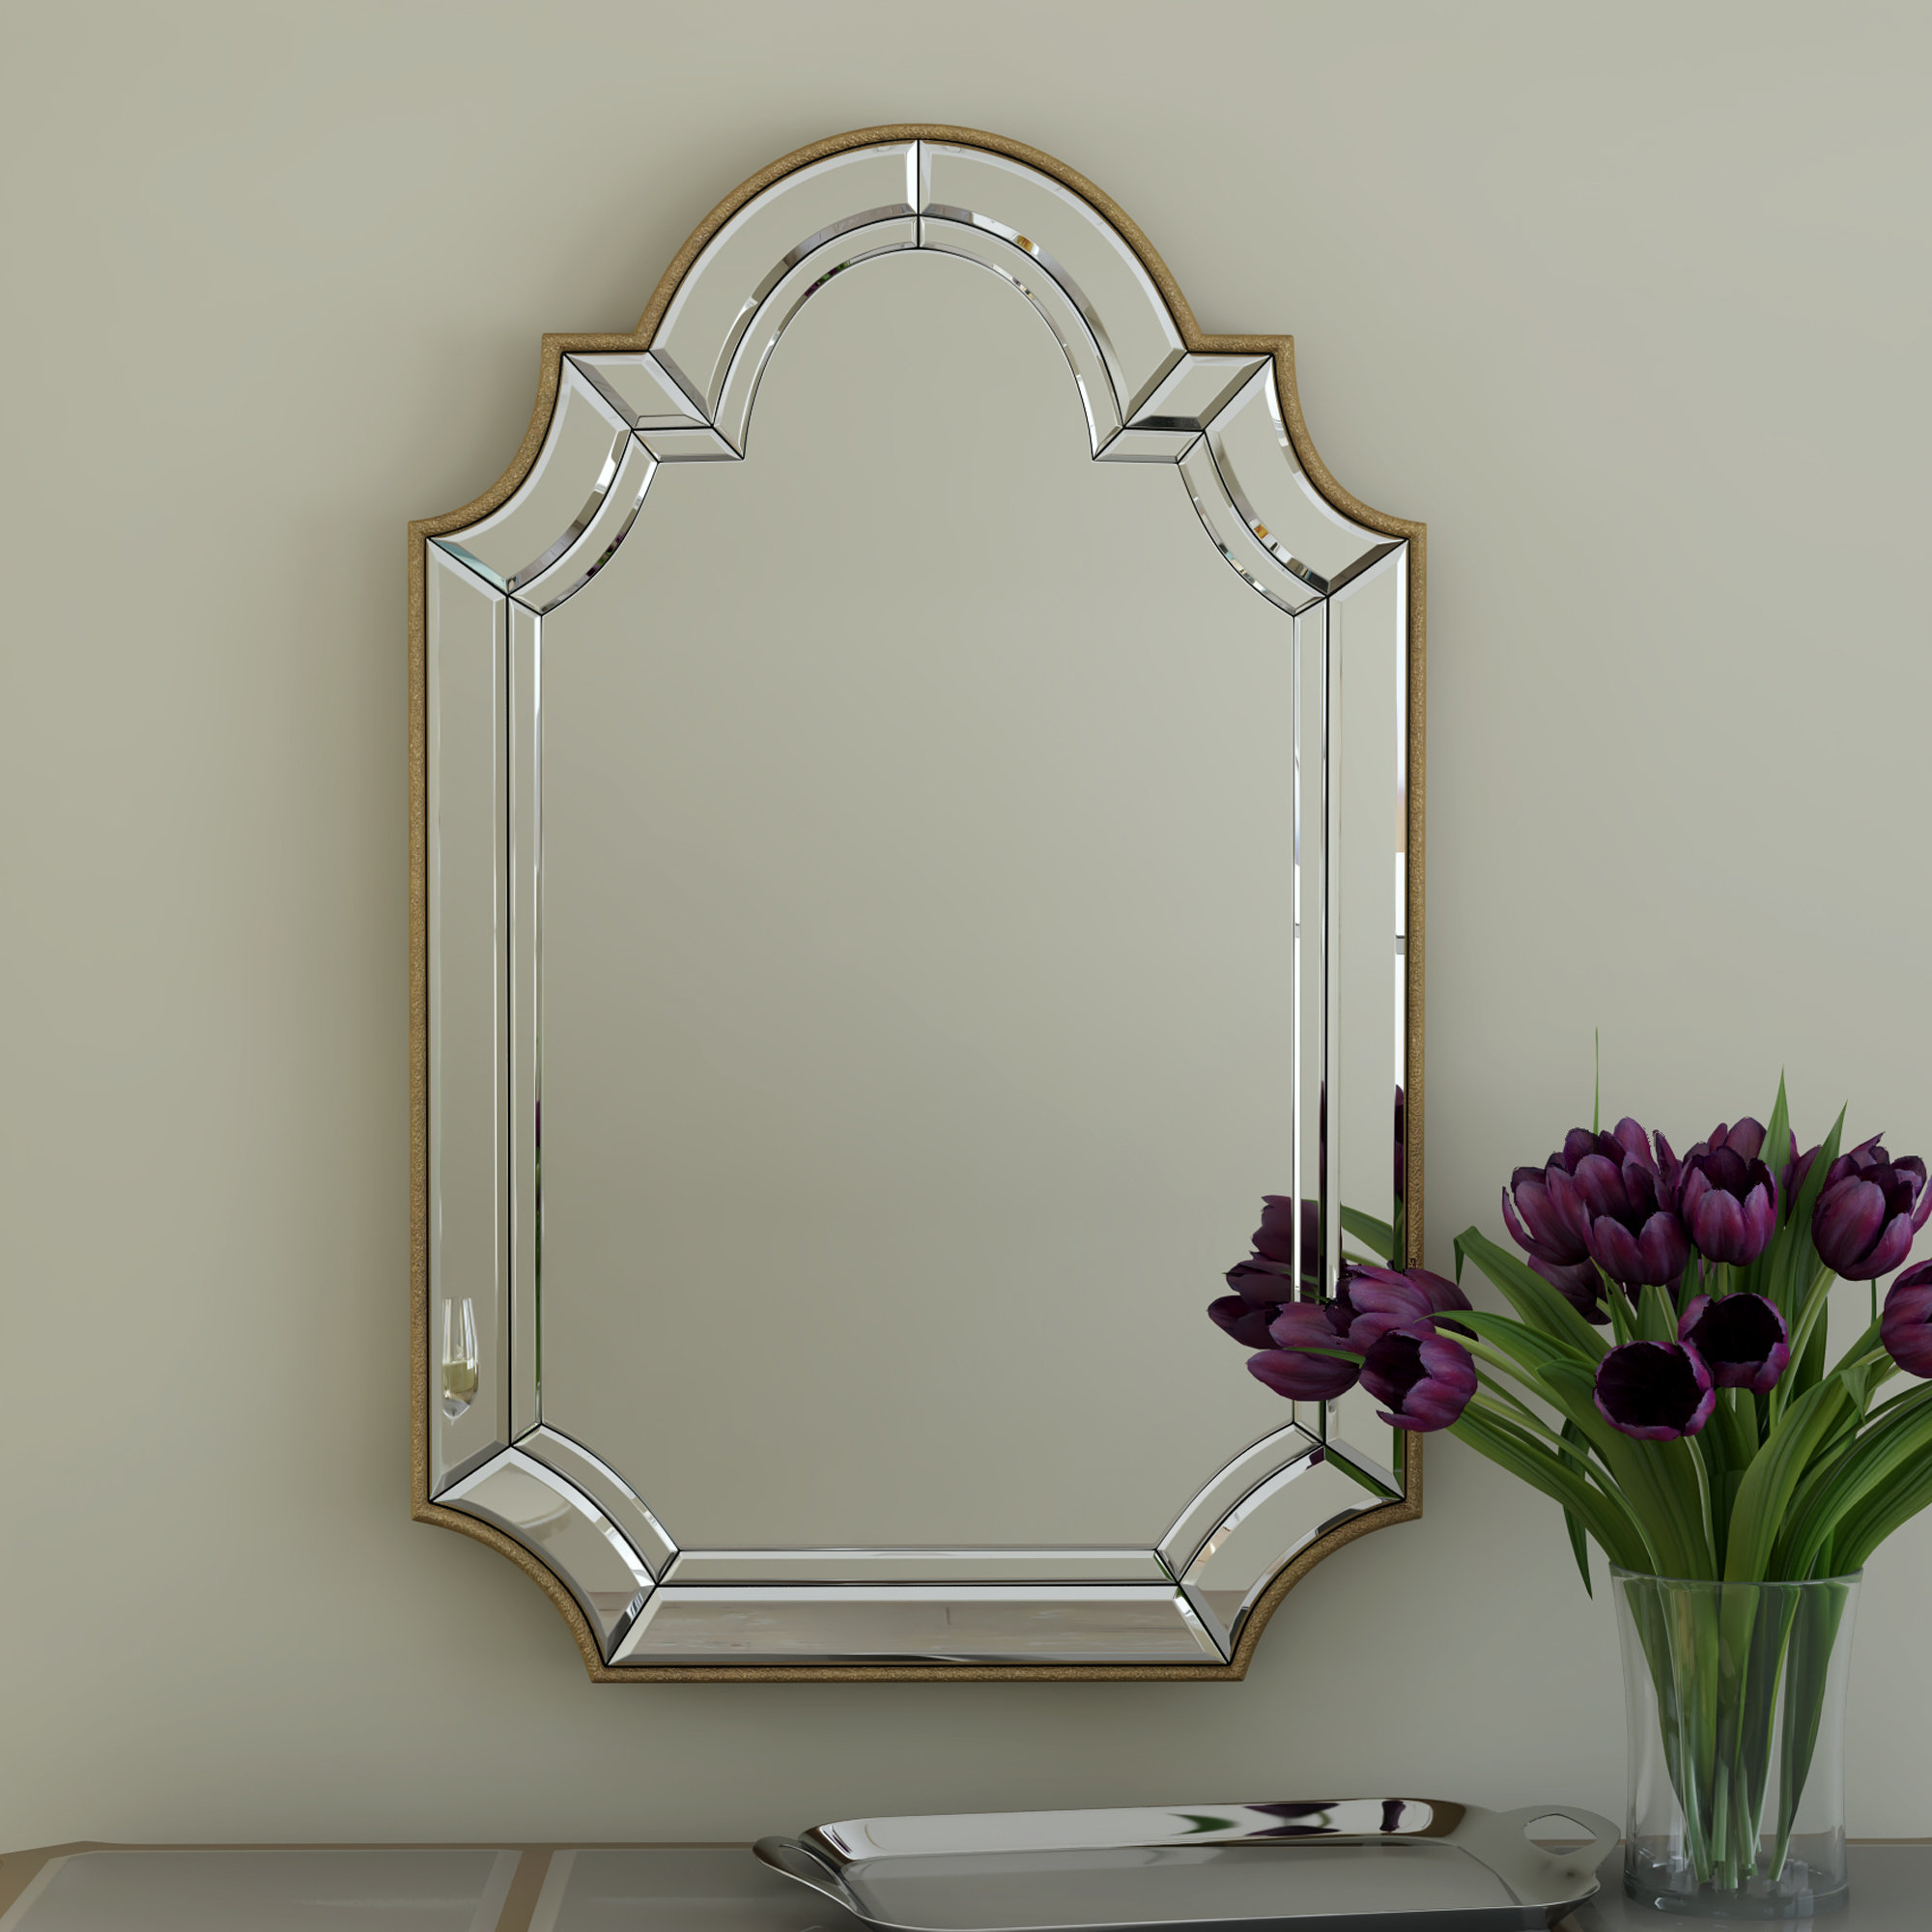 Arch/crowned Top Champagne Wall Mirror Pertaining To Fashionable Arch Vertical Wall Mirrors (View 11 of 20)